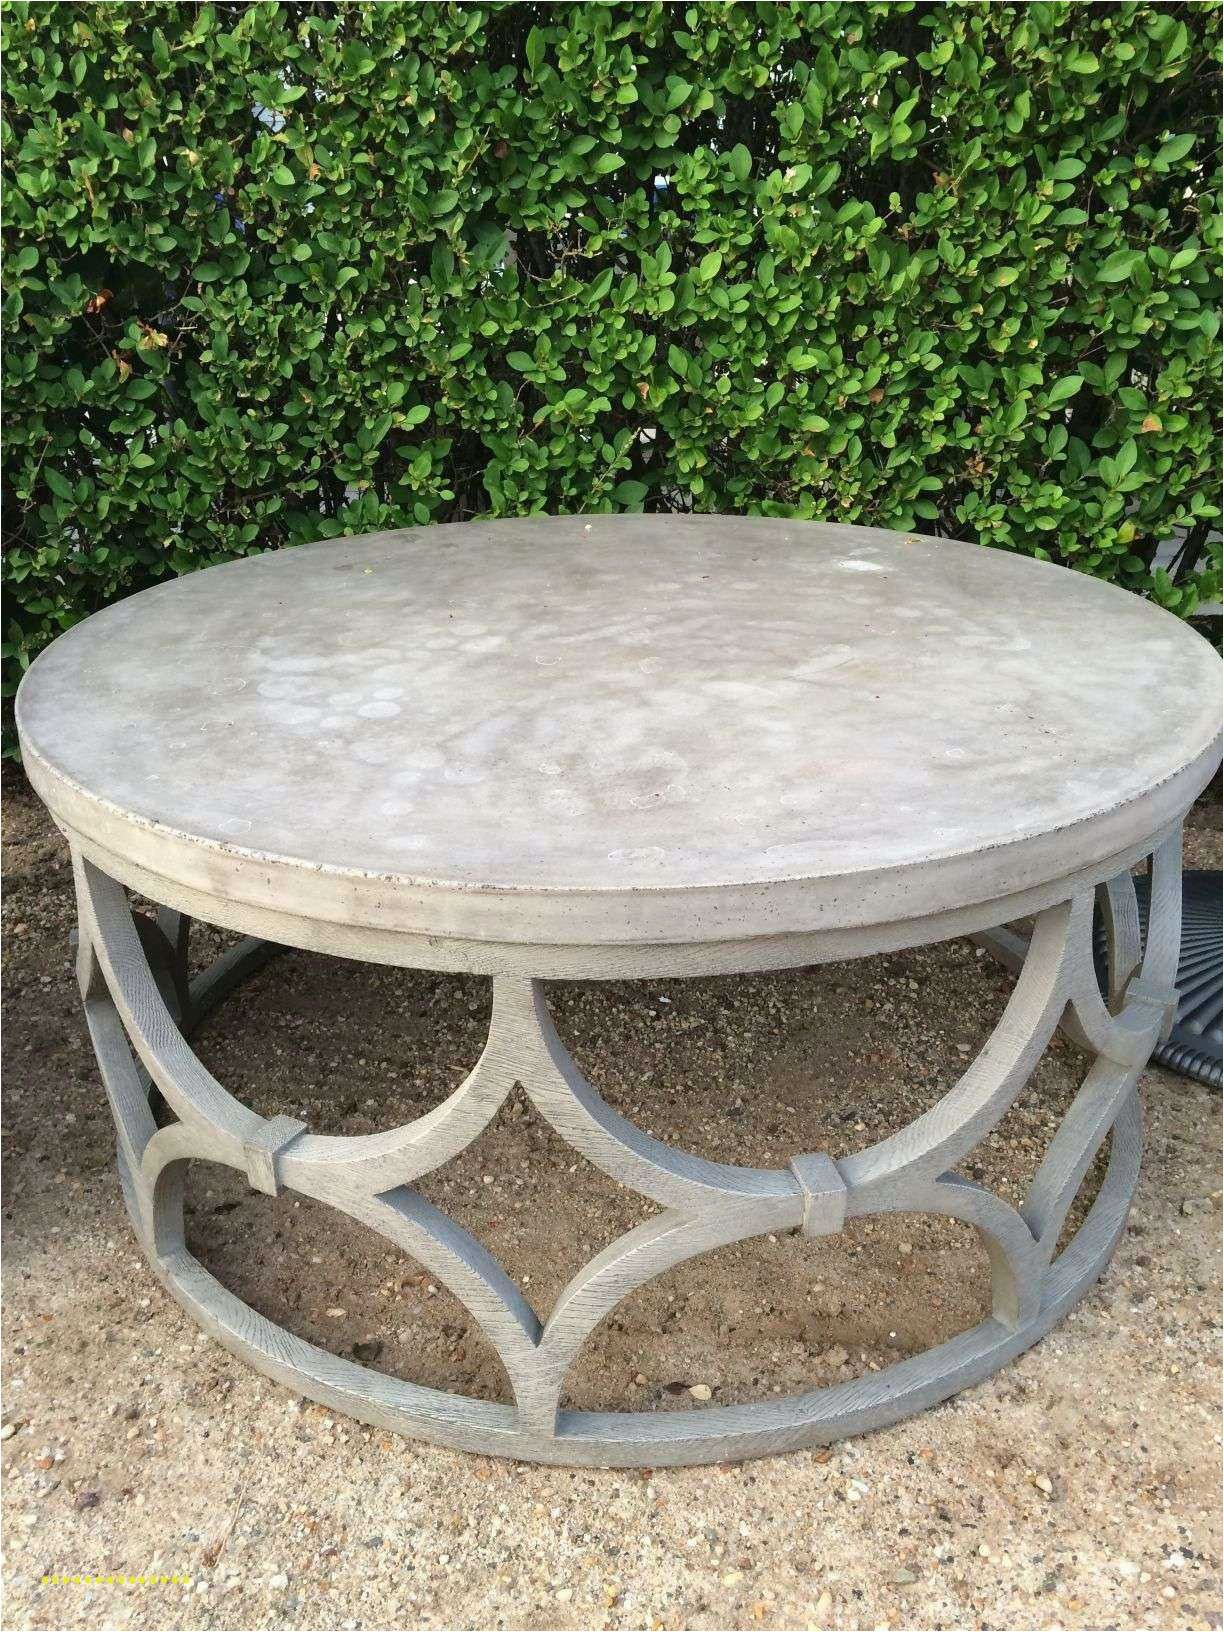 Large Round Stone Garden Table Check More At Http://www.arch20.club/2017/04/18/large-round-stone-… | Circle Coffee Tables, Round Coffee Table, Outdoor Coffee Tables